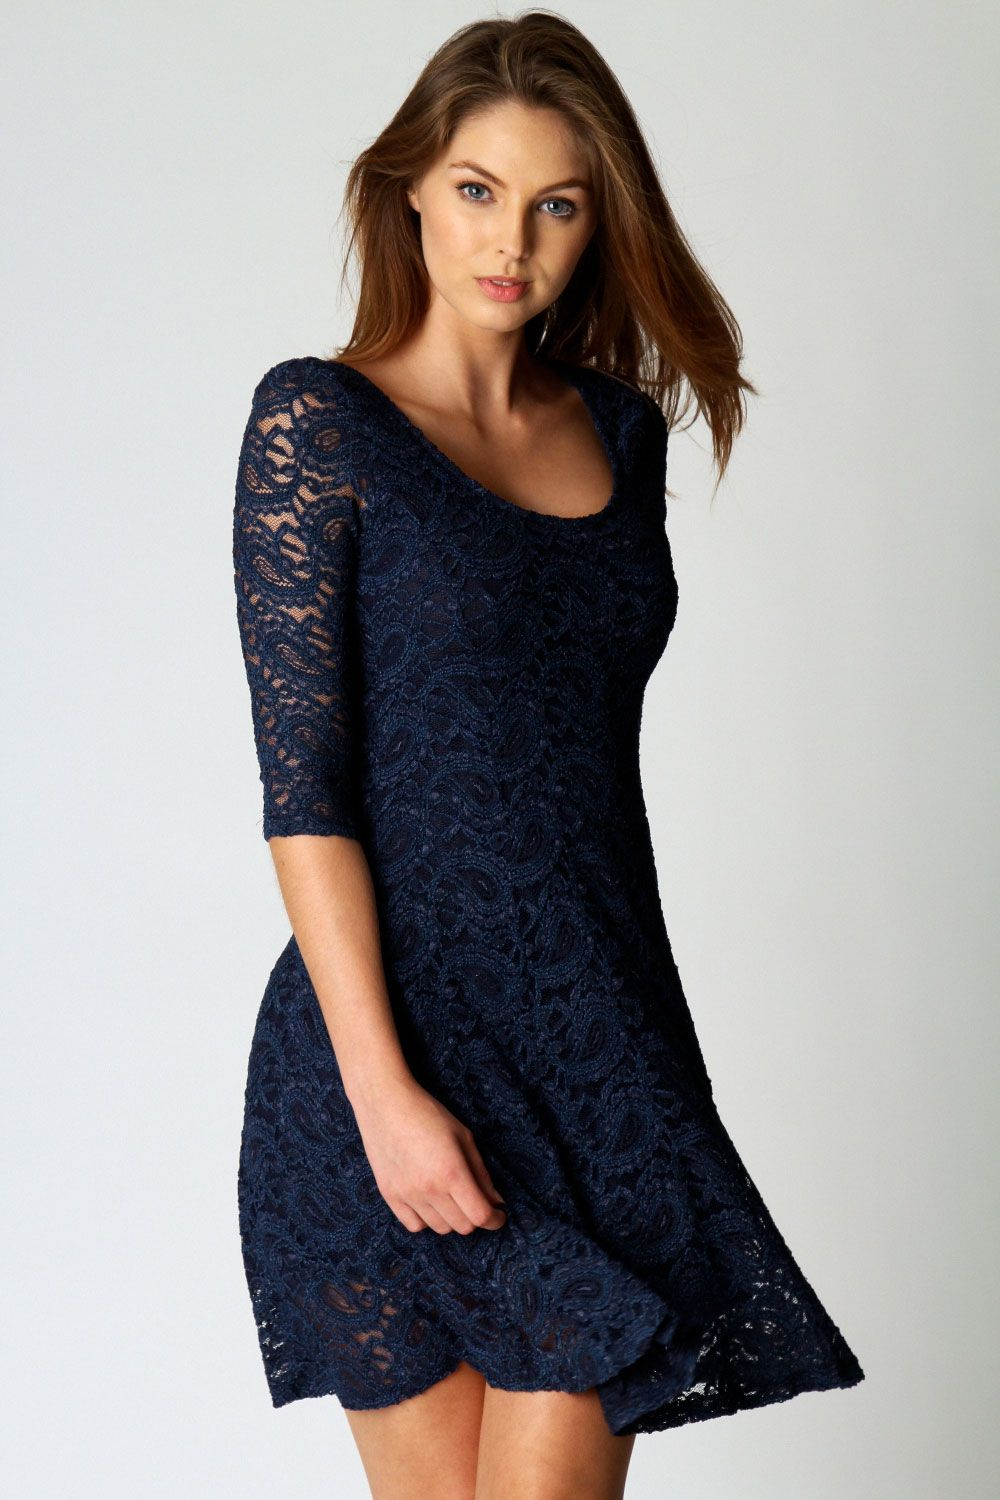 Ivy All Over Lace 3/4 Sleeve Fit + Flare Dress – Price £25.00 - - Style IQ - The UKs Biggest Female Shopping Site